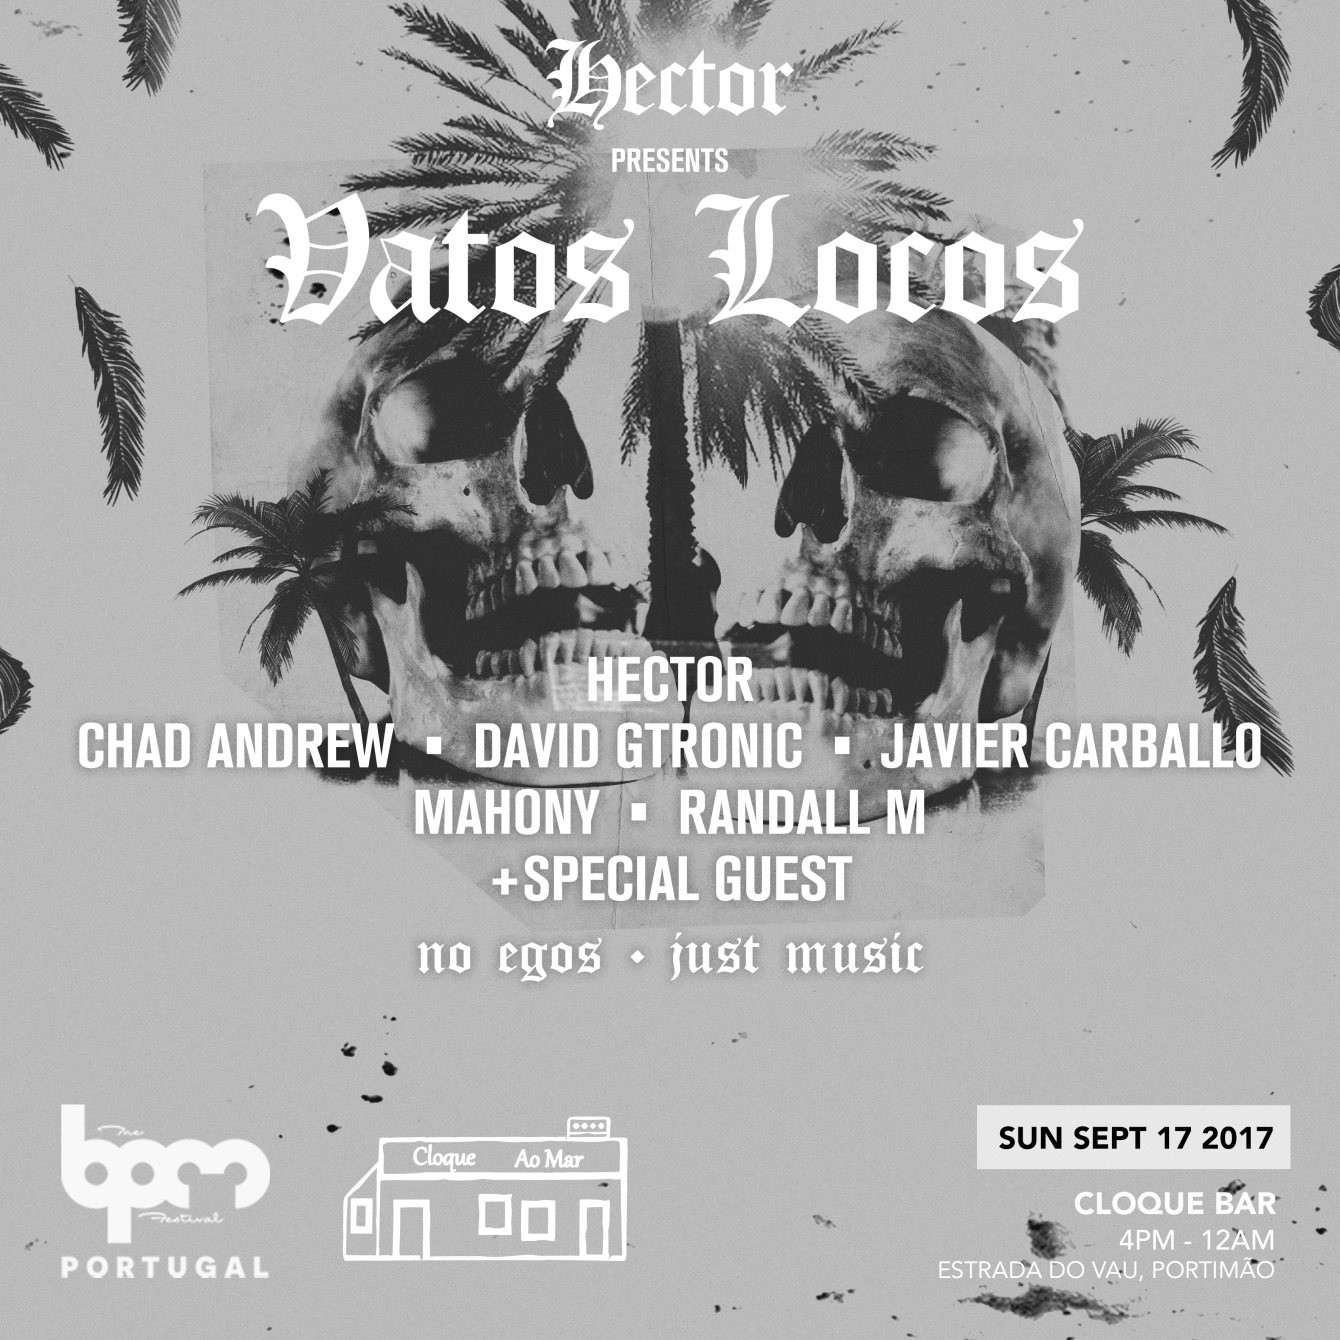 download → Hector, Javier Carballo, Randall M, Mahony, Chad Andrew B2B David Gtronic - live at Vatos Locos (BPM Portugal 2017) - 17-Sep-2017